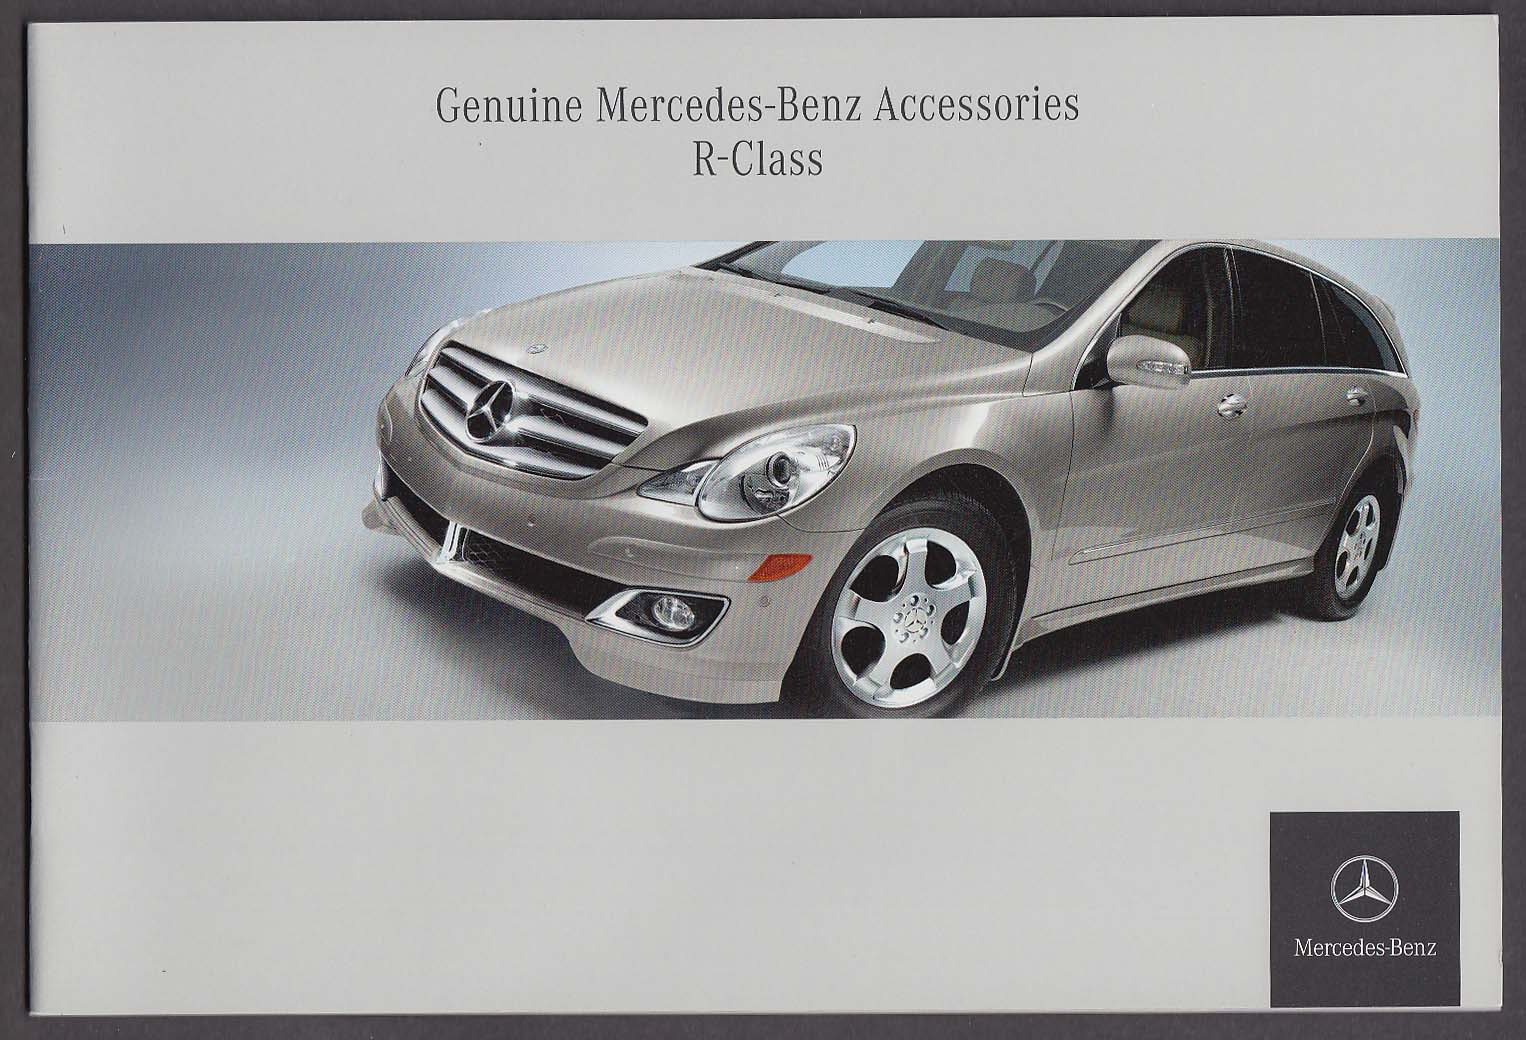 2006 Mercedes-Benz R-Class Genuine Accessories catalog